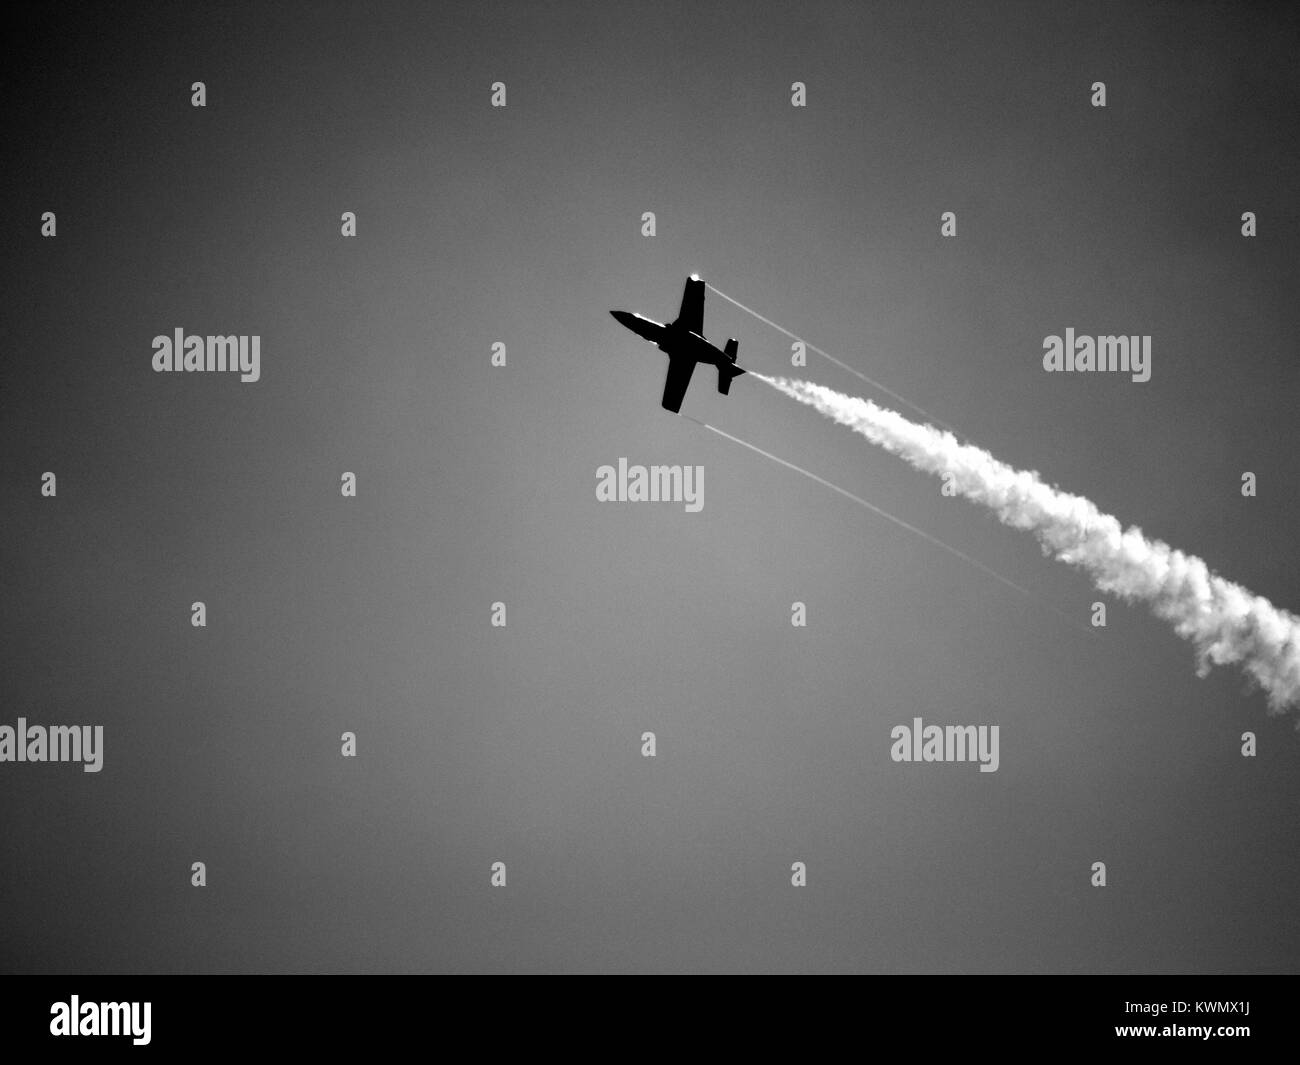 Plane upside down with chemtrail - Stock Image